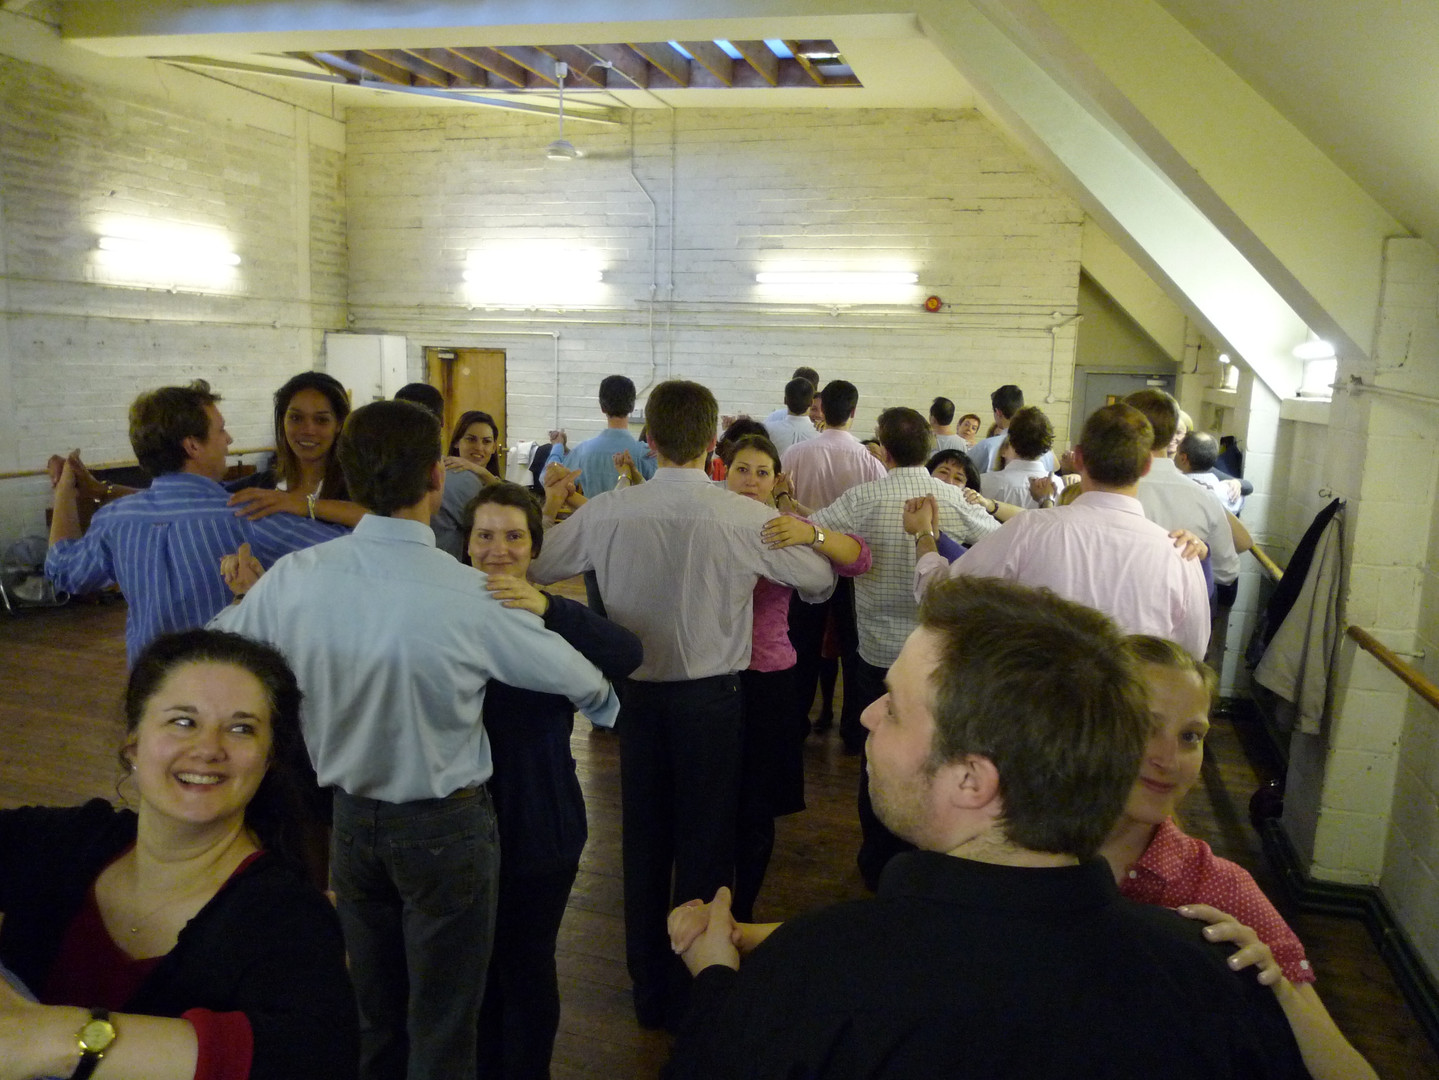 ballroom dancing courses and classes in London